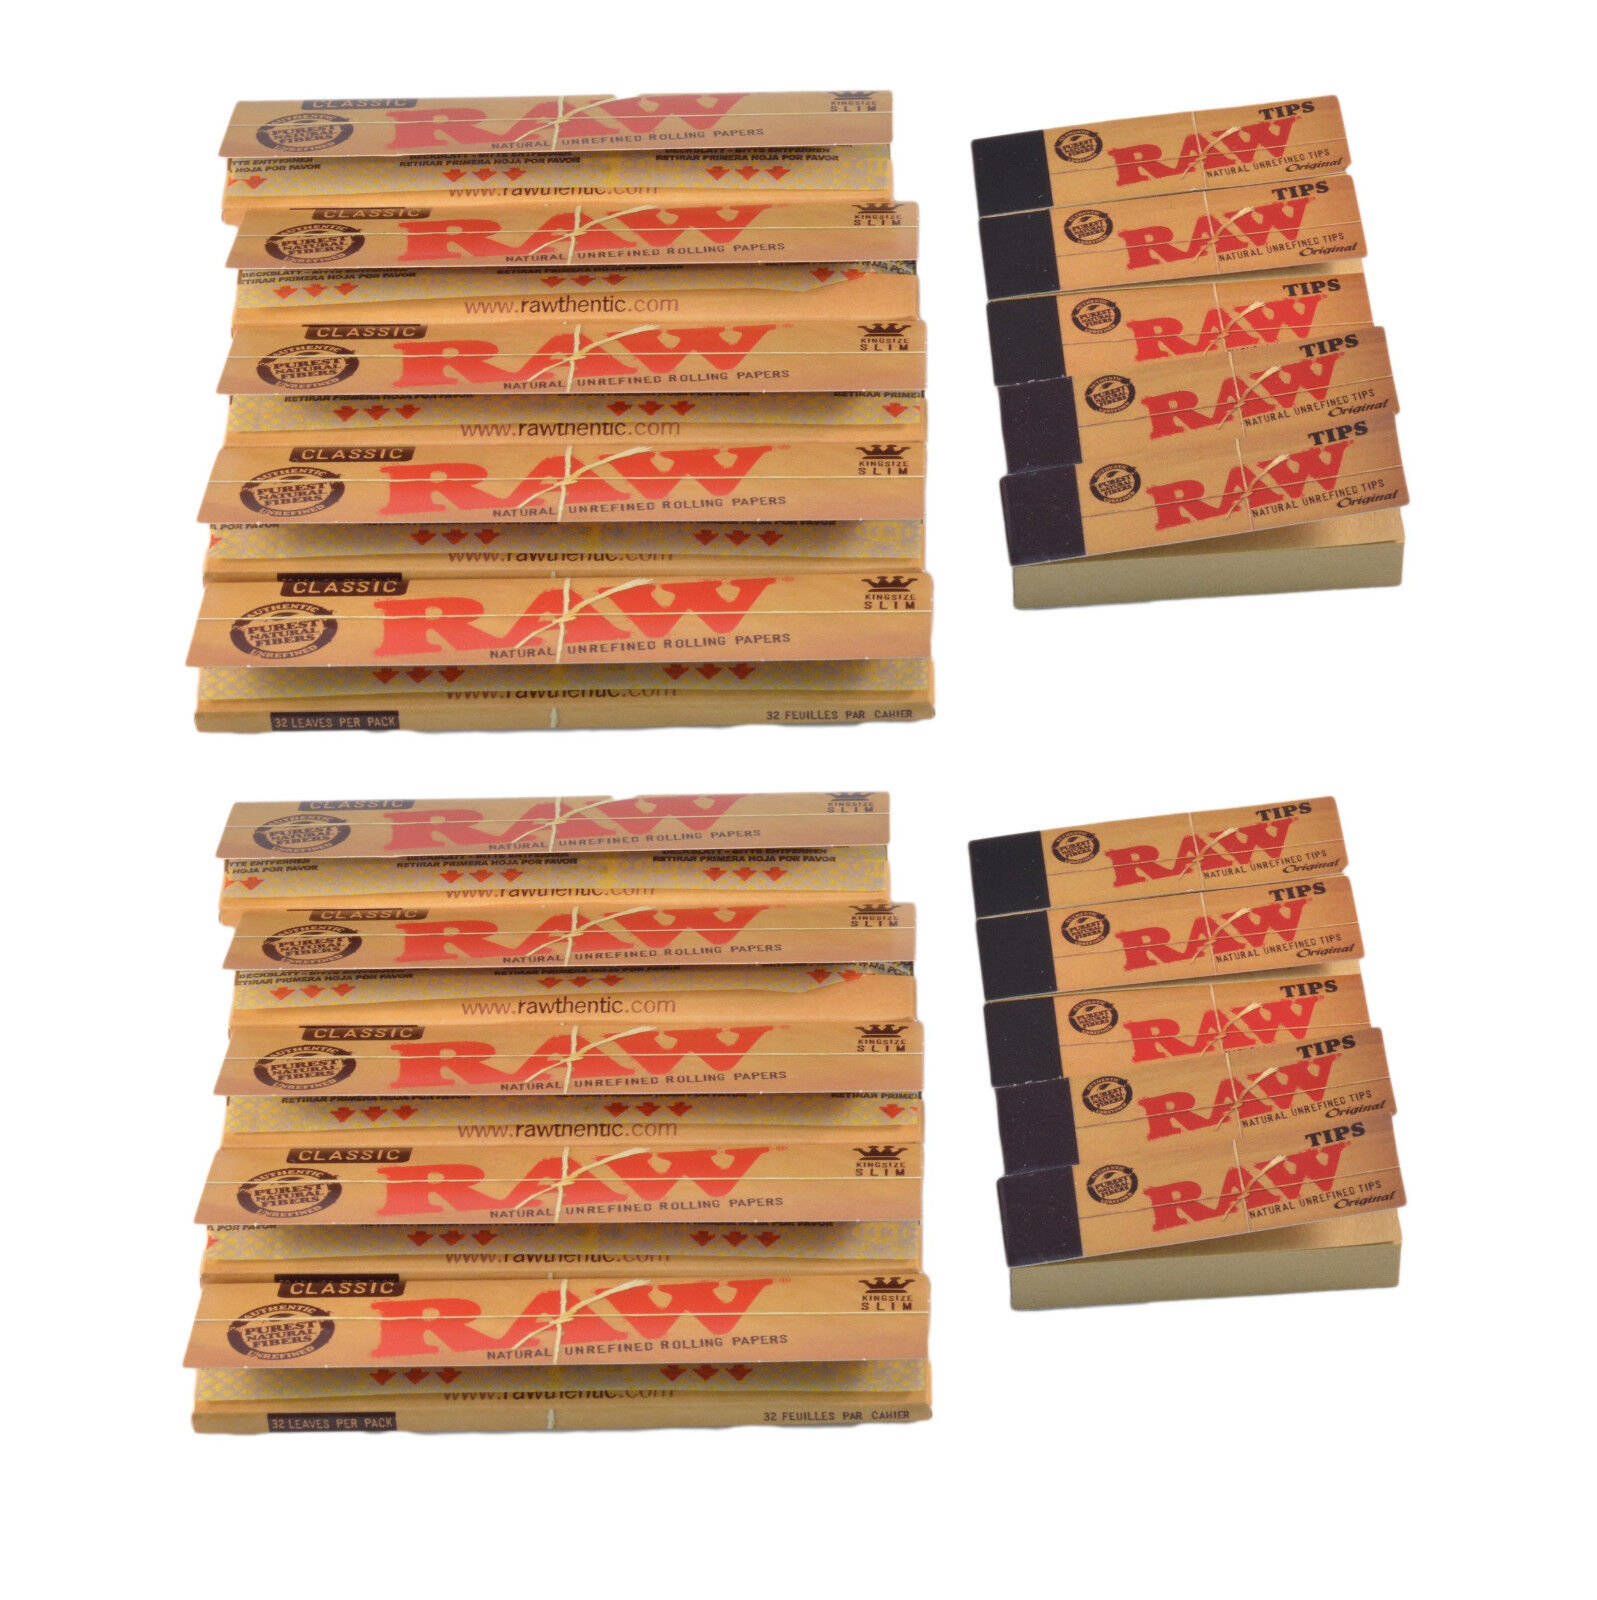 raw papers with tips for sale Raw organic connoisseur king size slim papers with tips are made from pure hemp paper and have been organically grown they also come with unbleached filter tips.